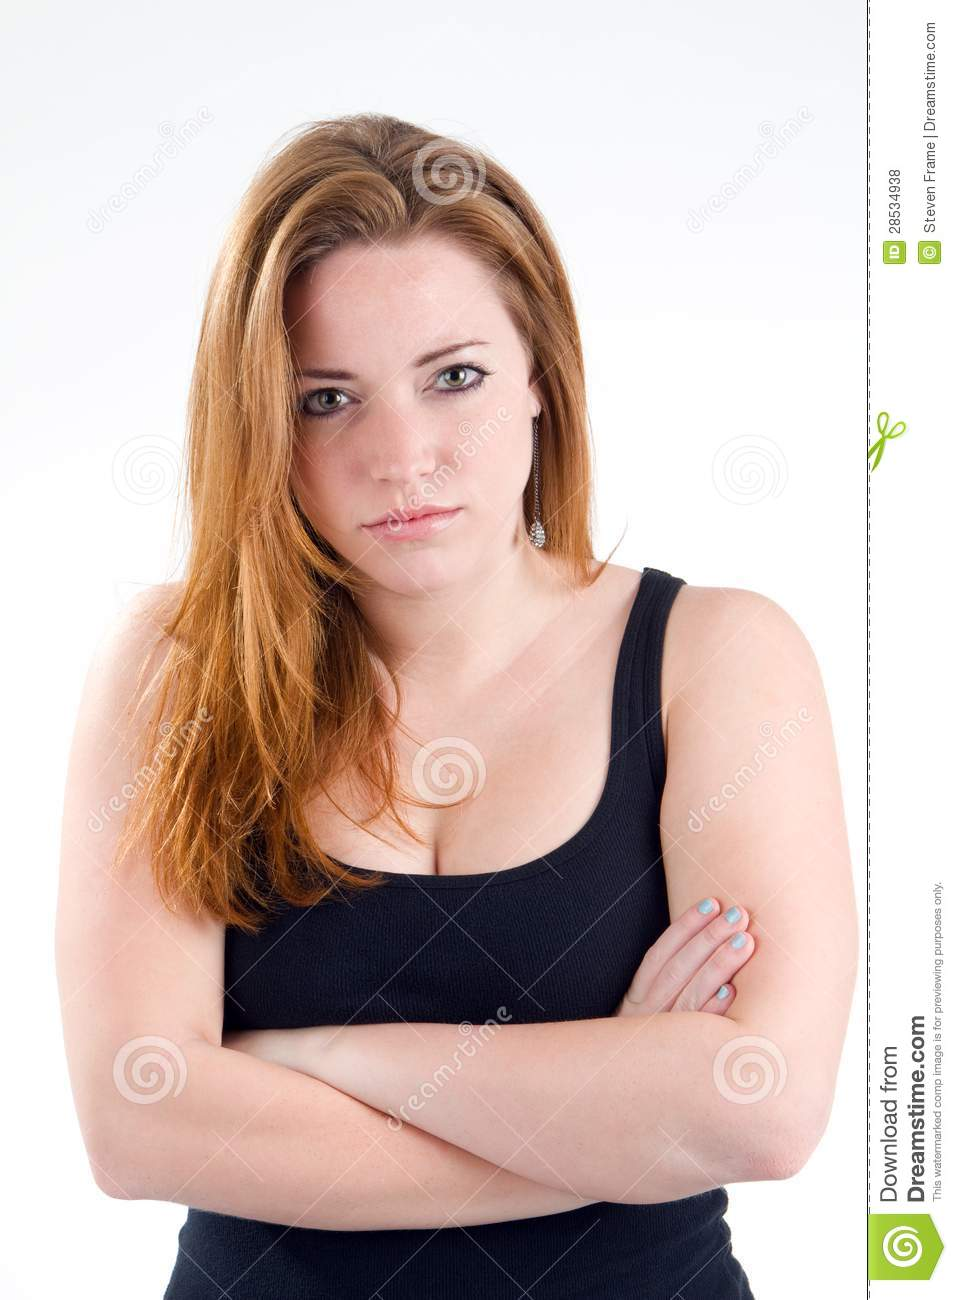 Woman Bad Attitude Royalty Free Stock Photos - Image: 28534938